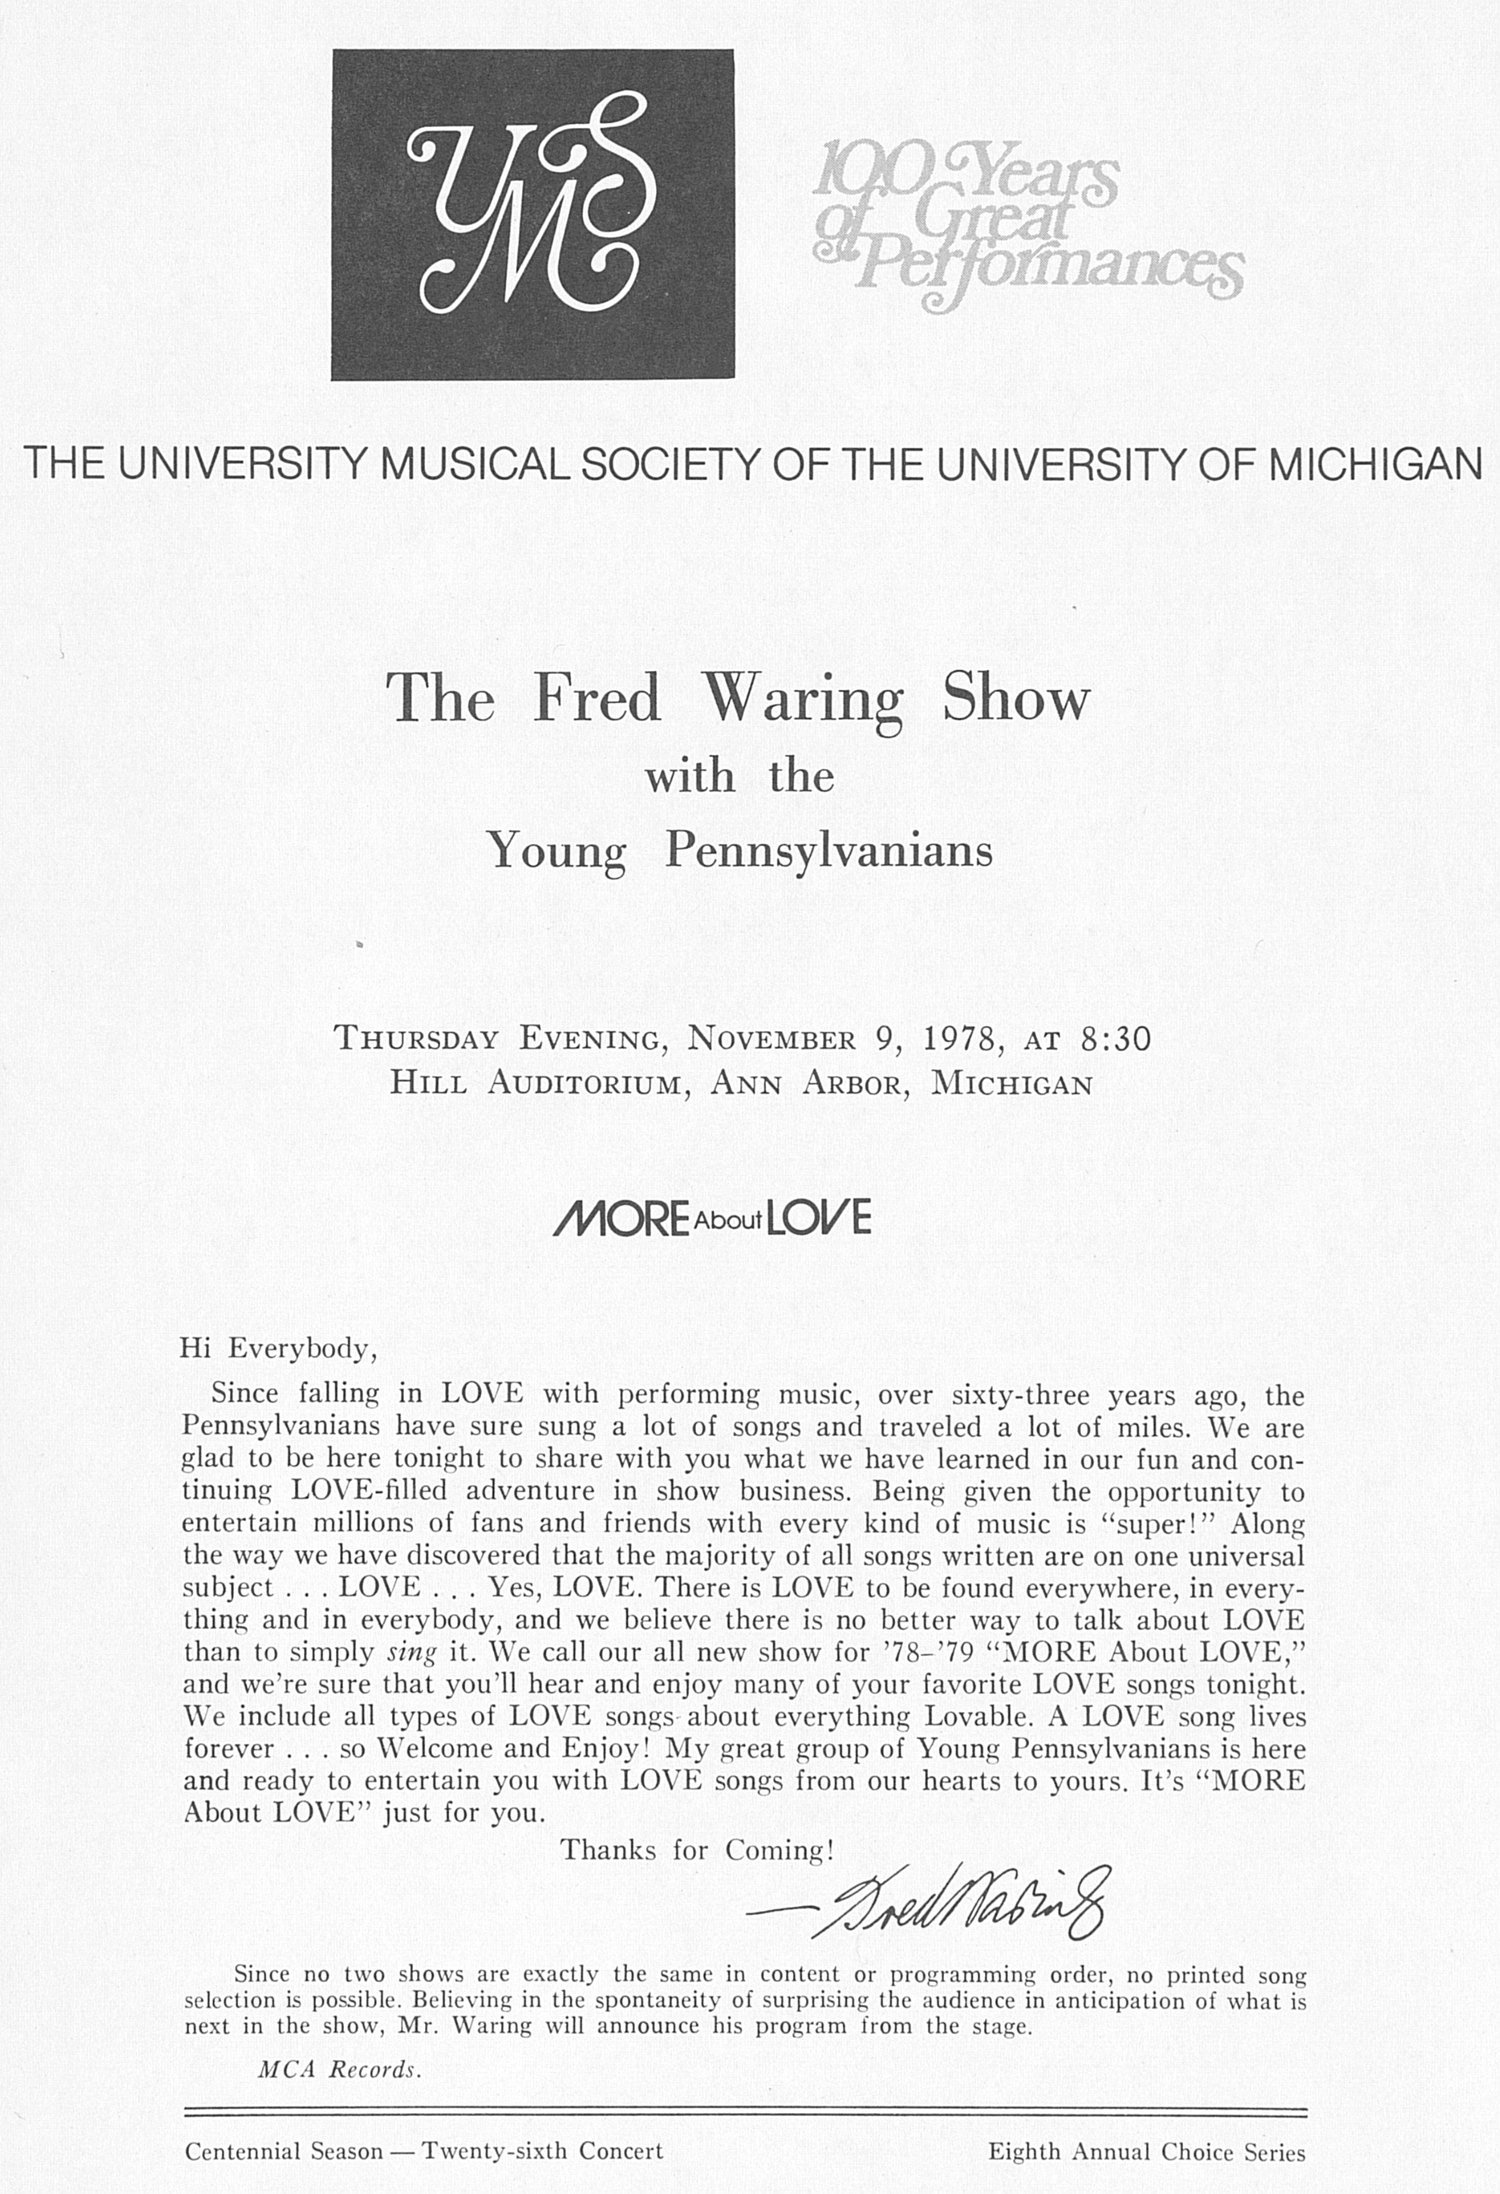 UMS Concert Program, November 9, 1978: The Fred Waring Show With The Young Pennsylvanians --  image